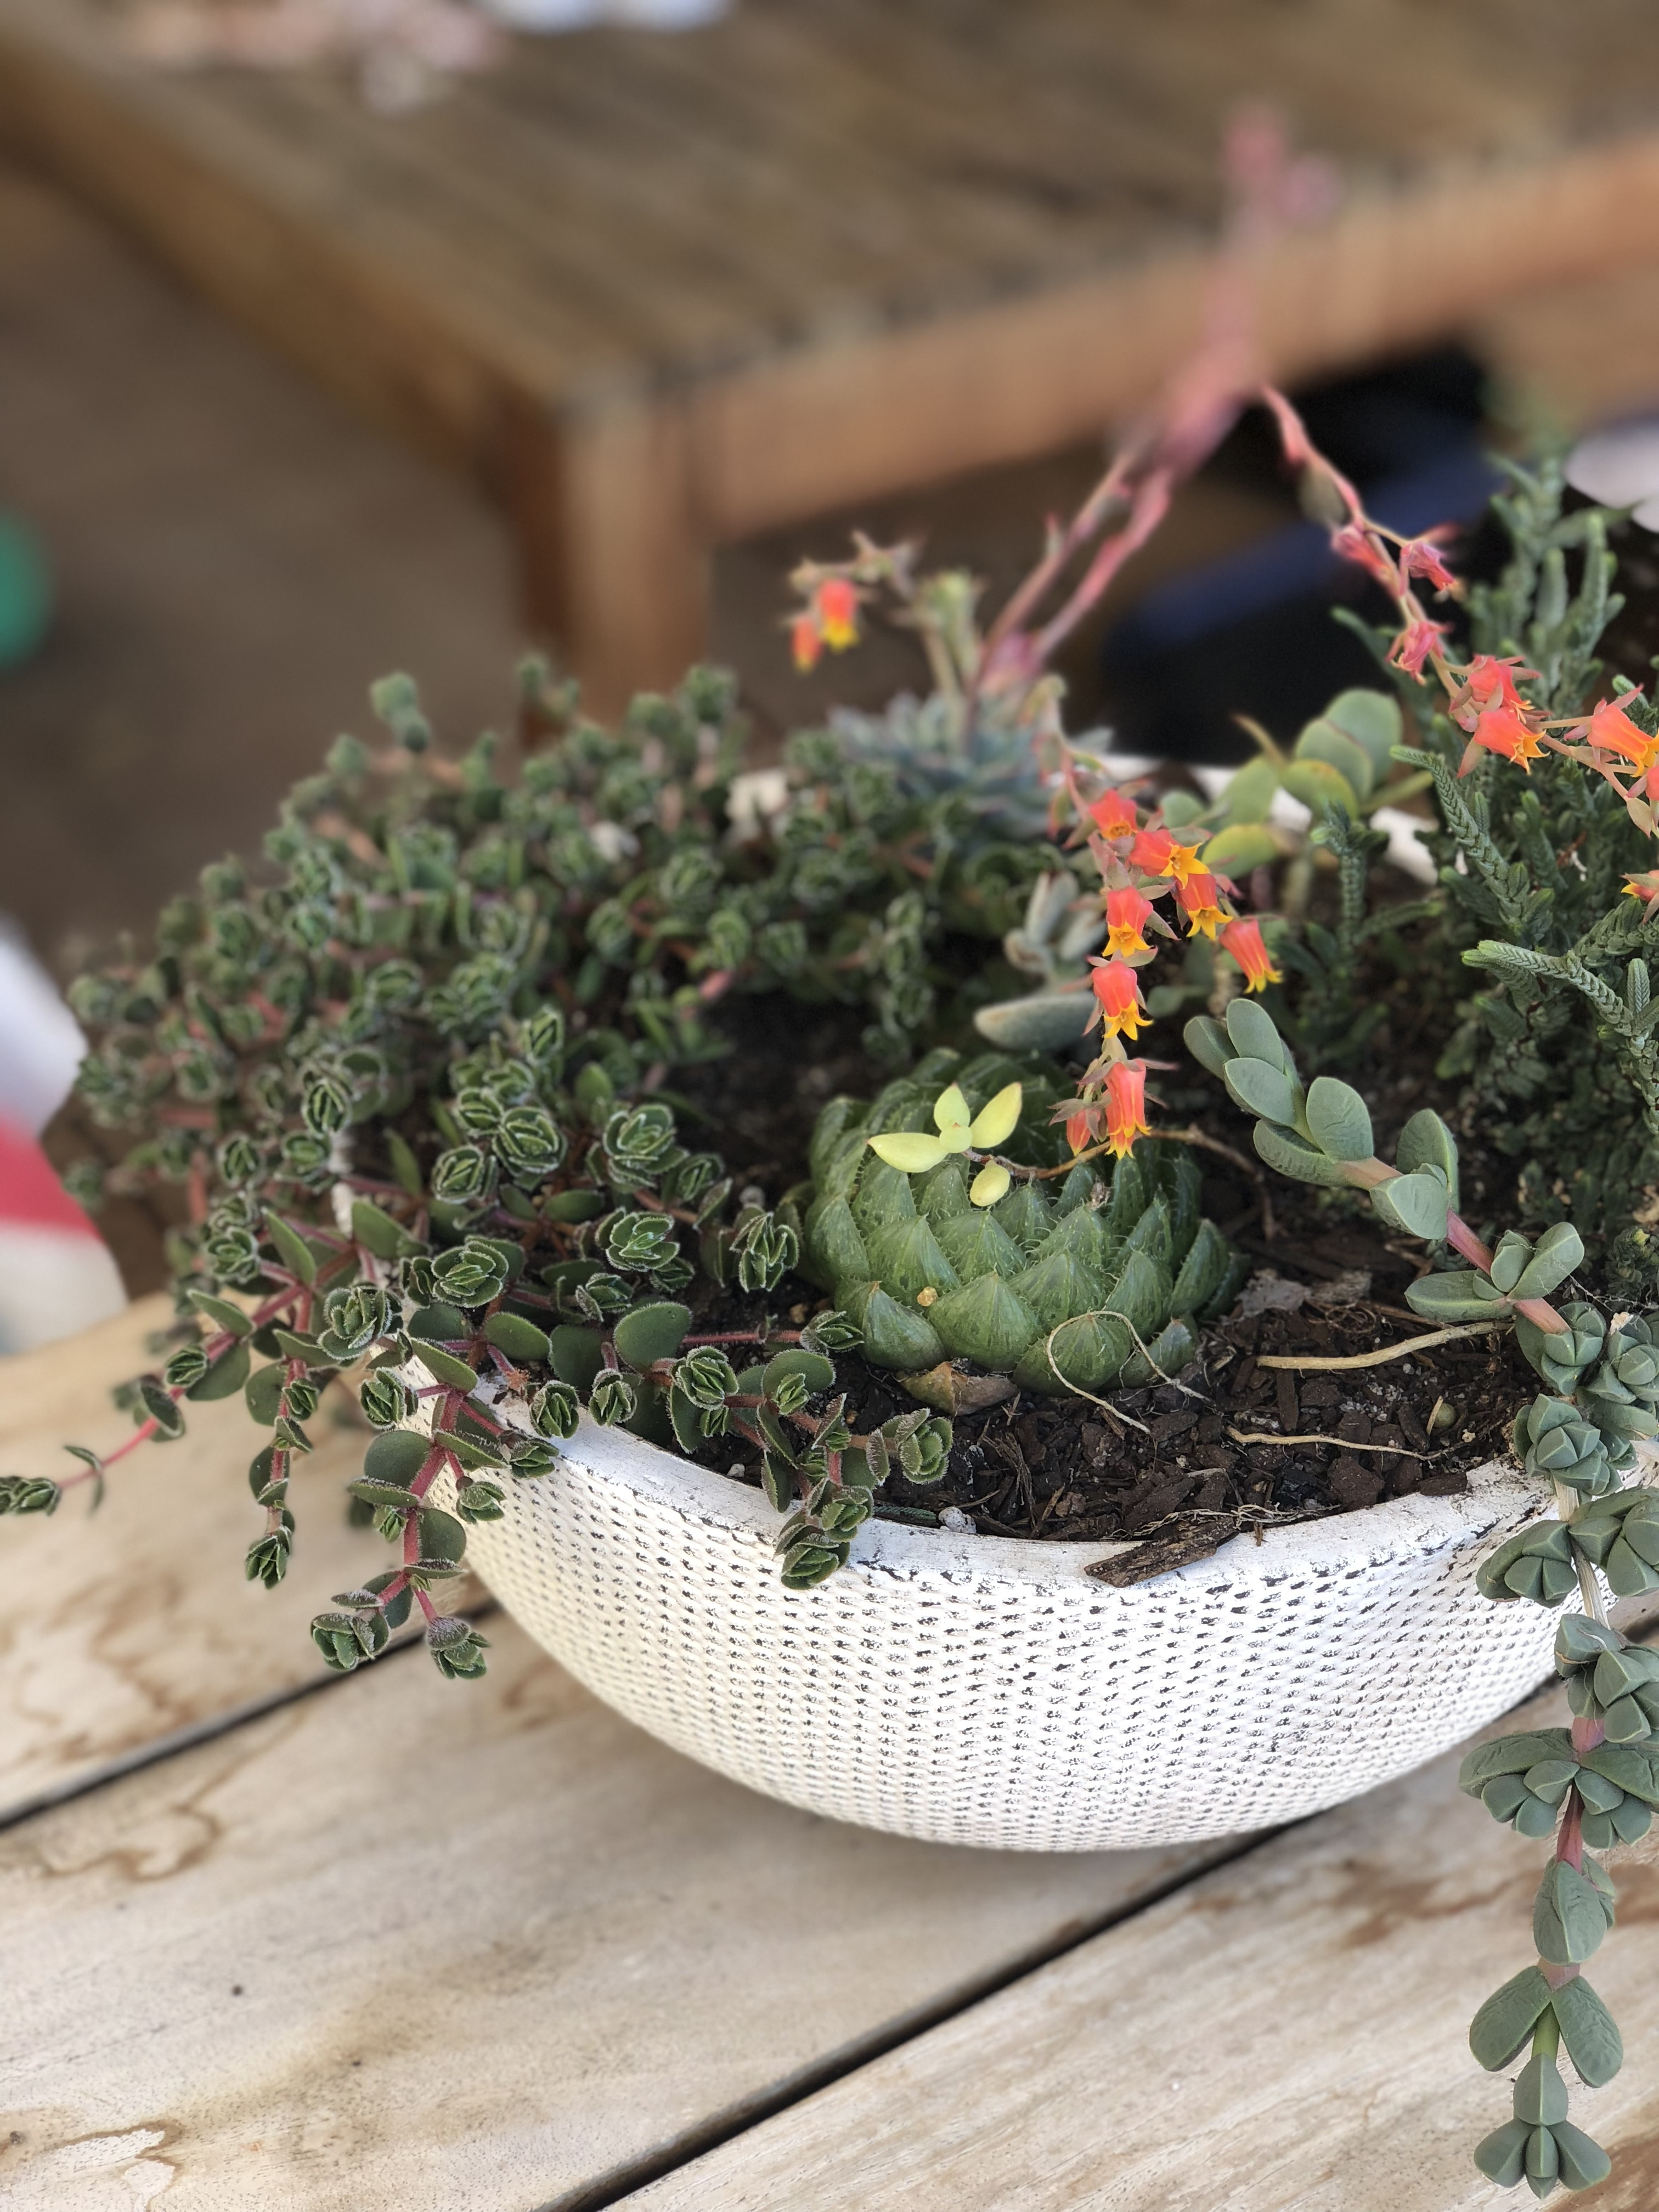 Selling Succulents Online